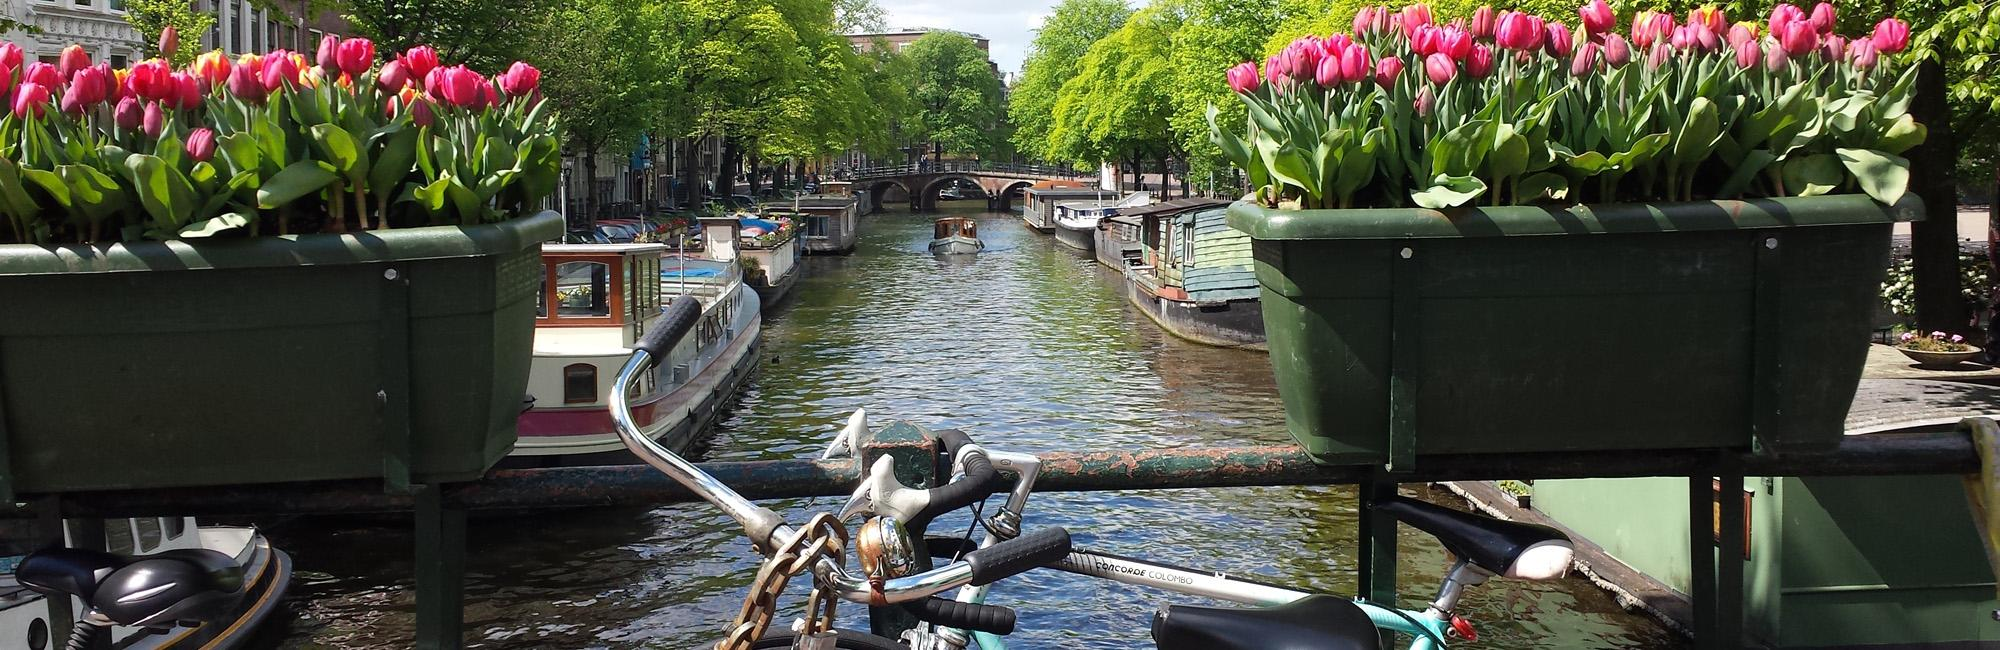 Dutch Bike Tours Radreisen Standort Amsterdam